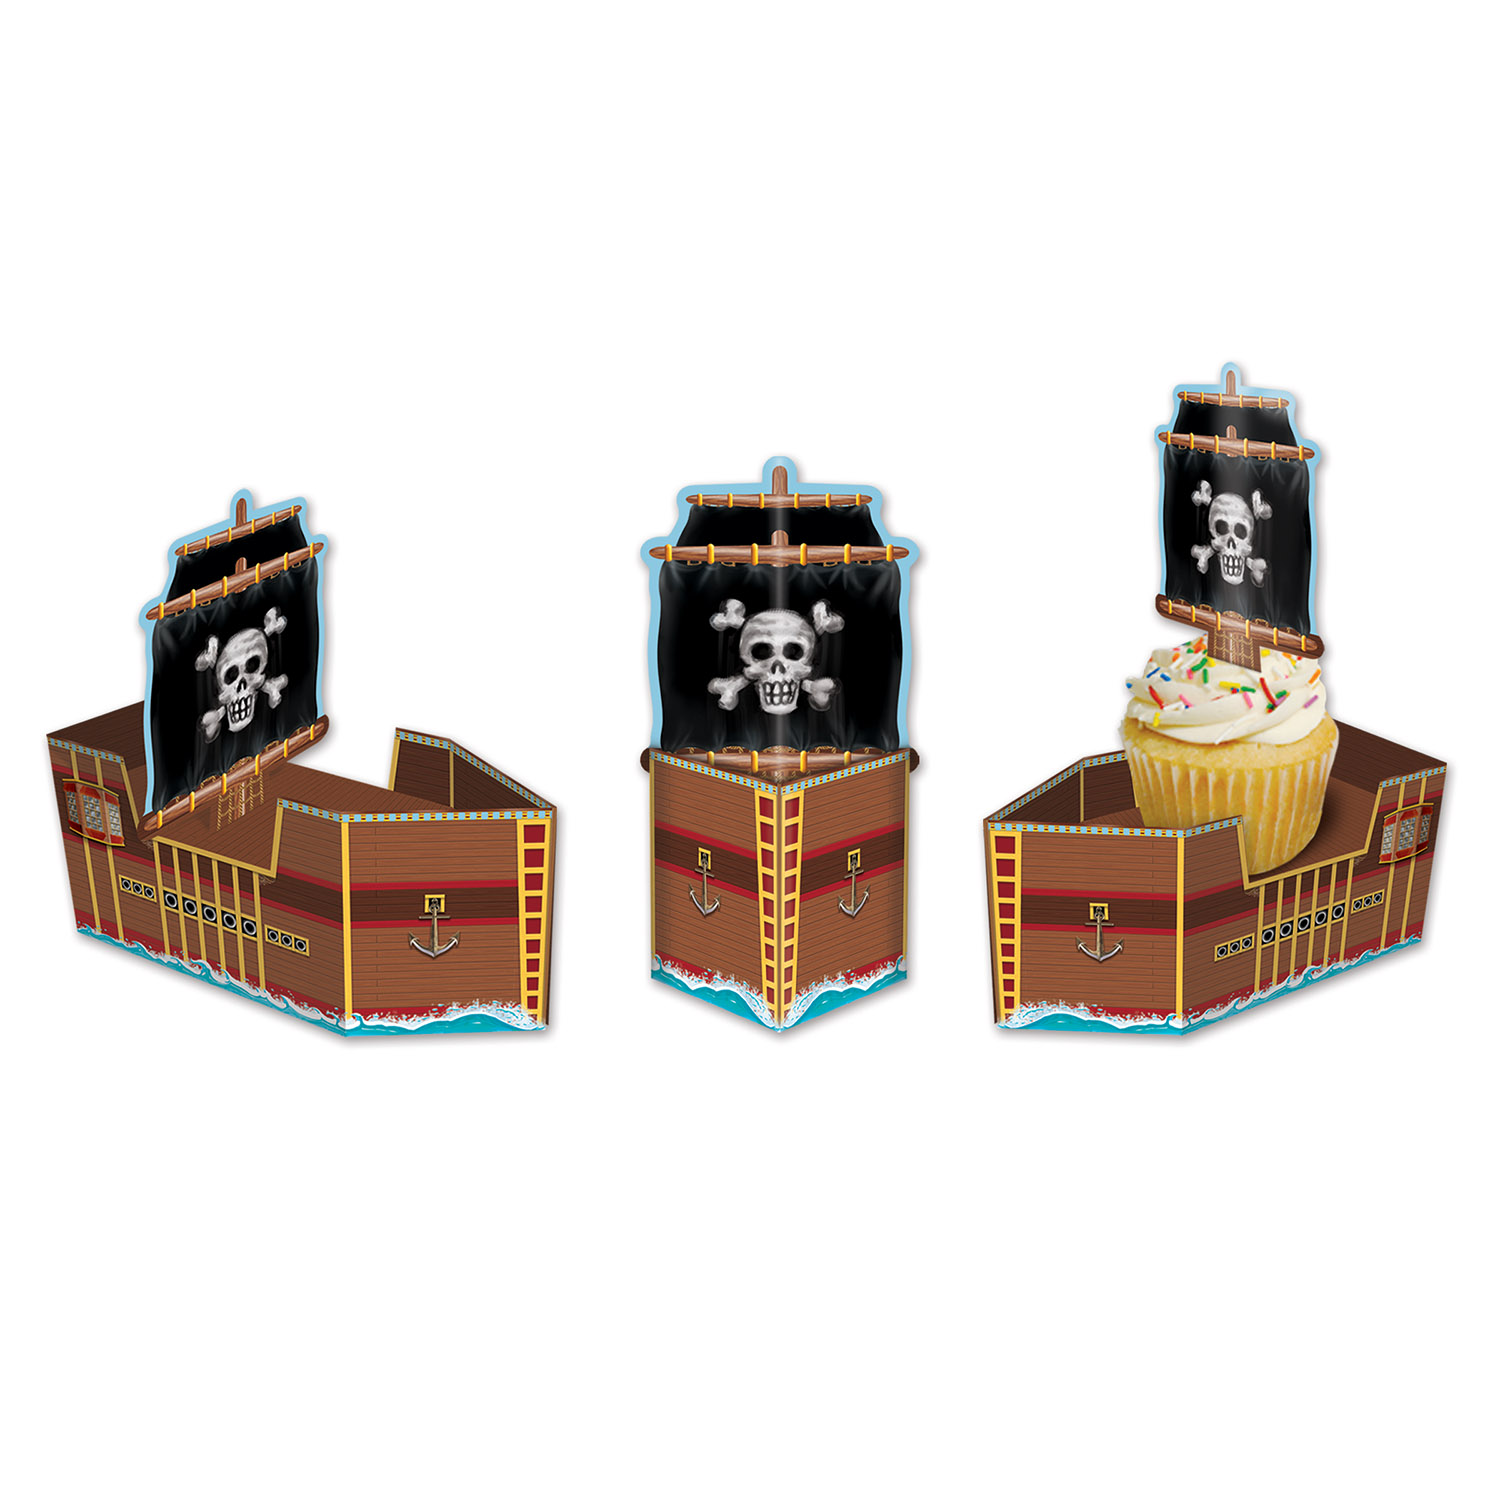 Pirate Ship Favor Boxes (Pack of 36) Pirate Ship Favor Boxes, party favor, new years eve, nautical, wholesale, inexpensive, bulk